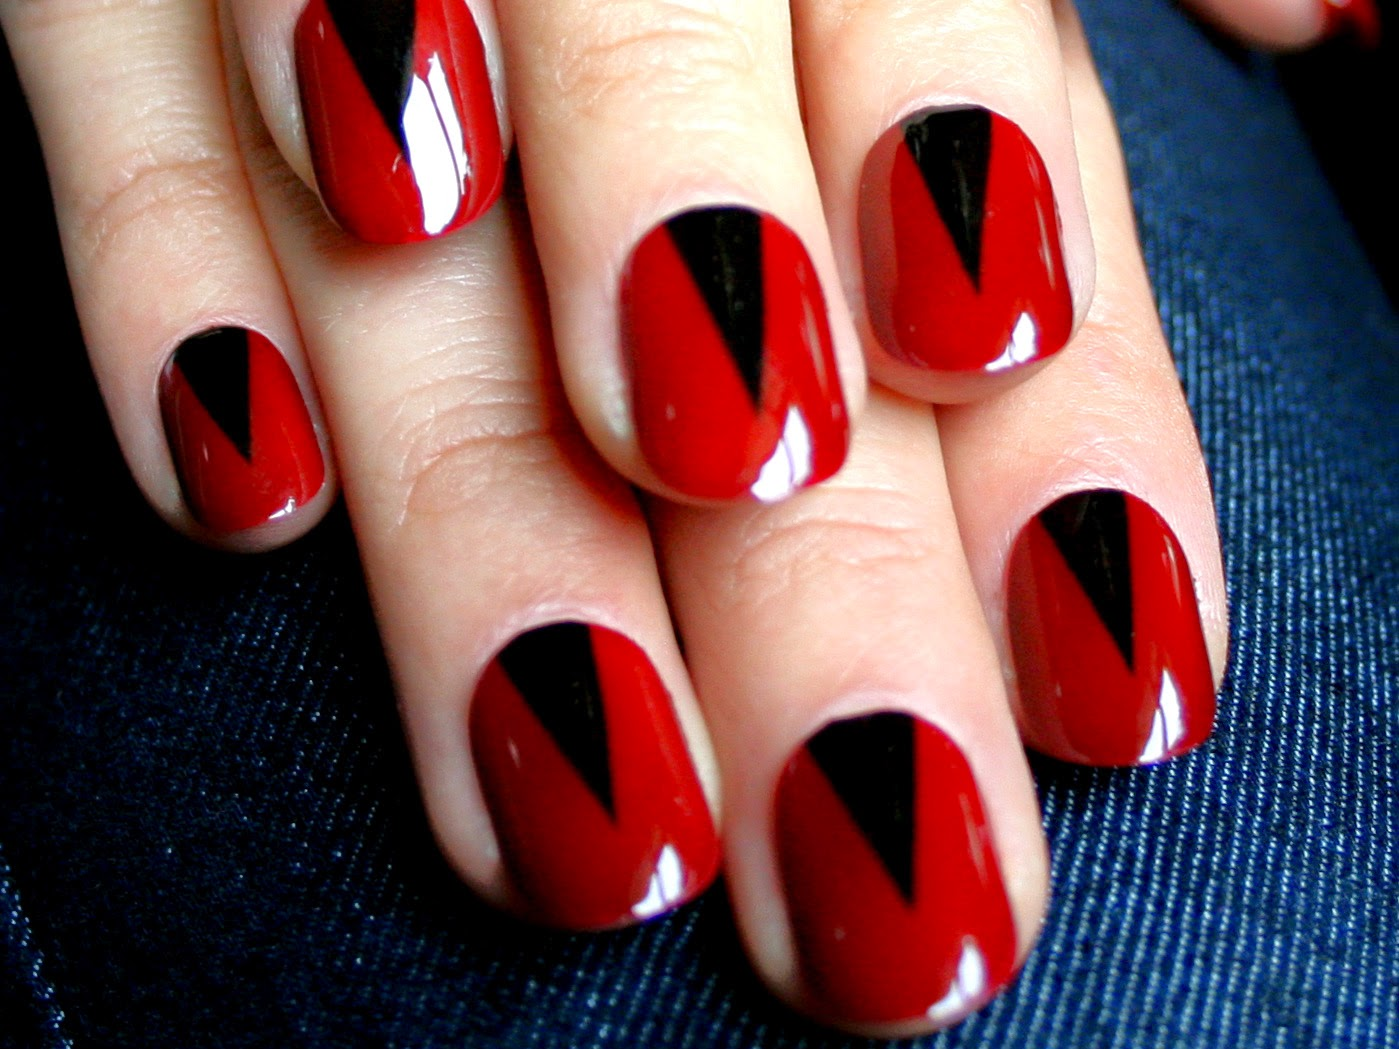 Red Black Nail Polish Designs - Red Black Nail Polish Designshttp://nails-side.blogspot.com/